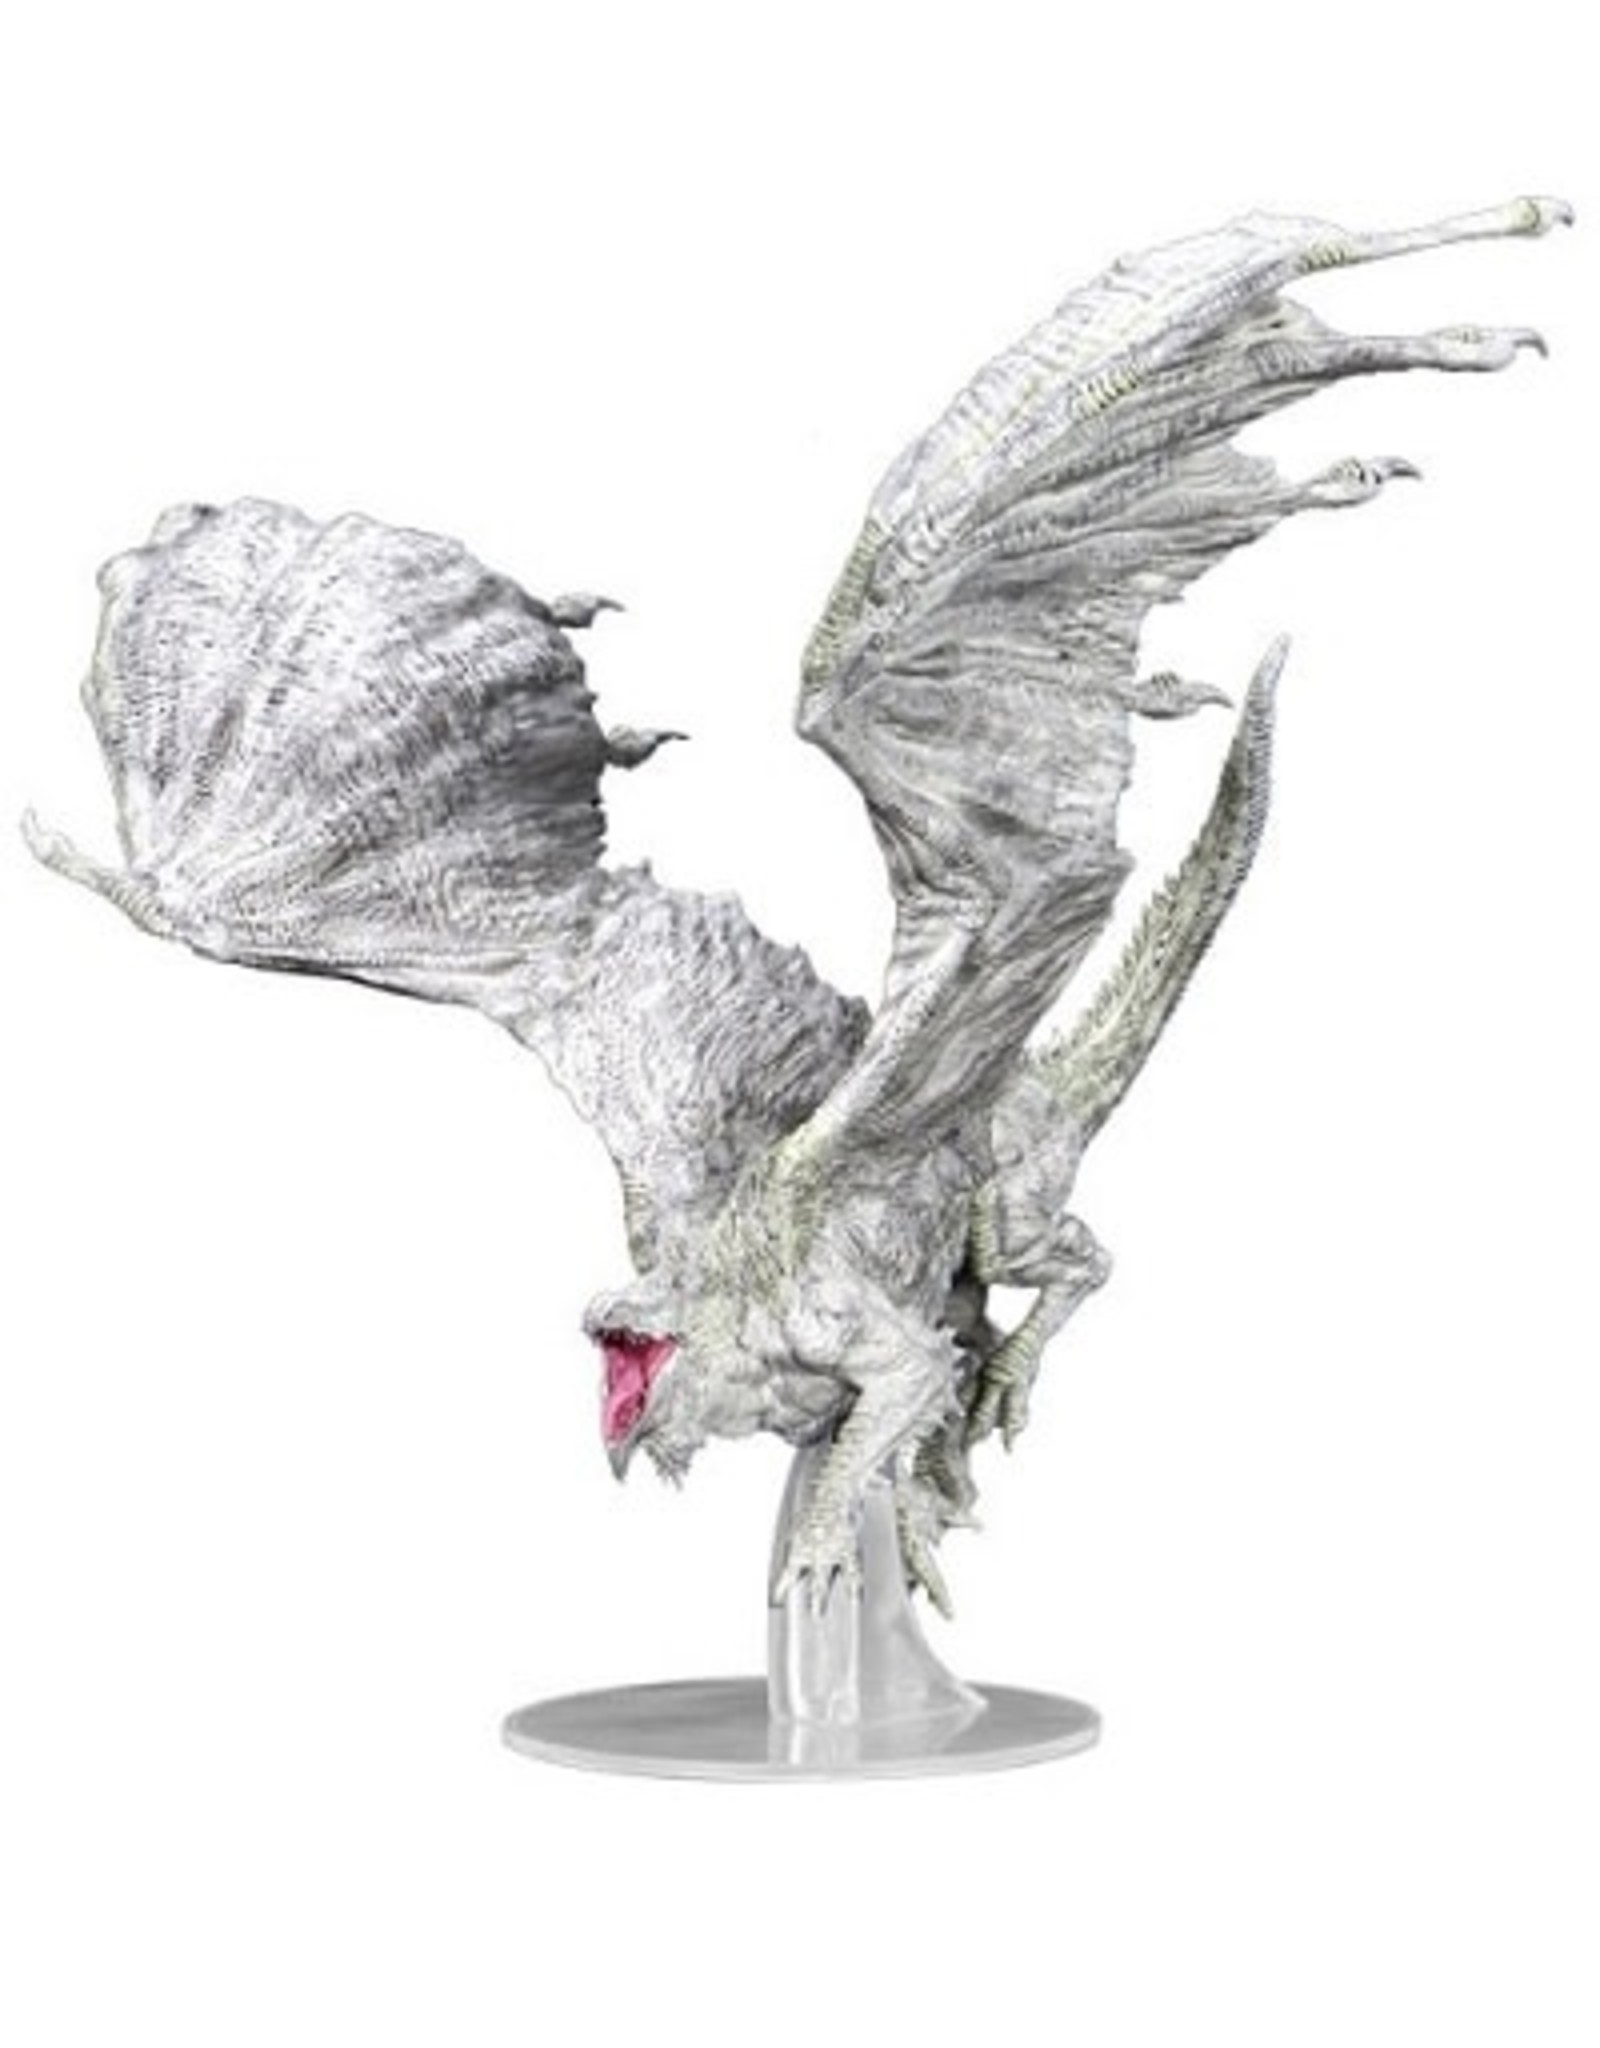 WizKids Icons of the Realms (Adult White Dragon Premium Figure)